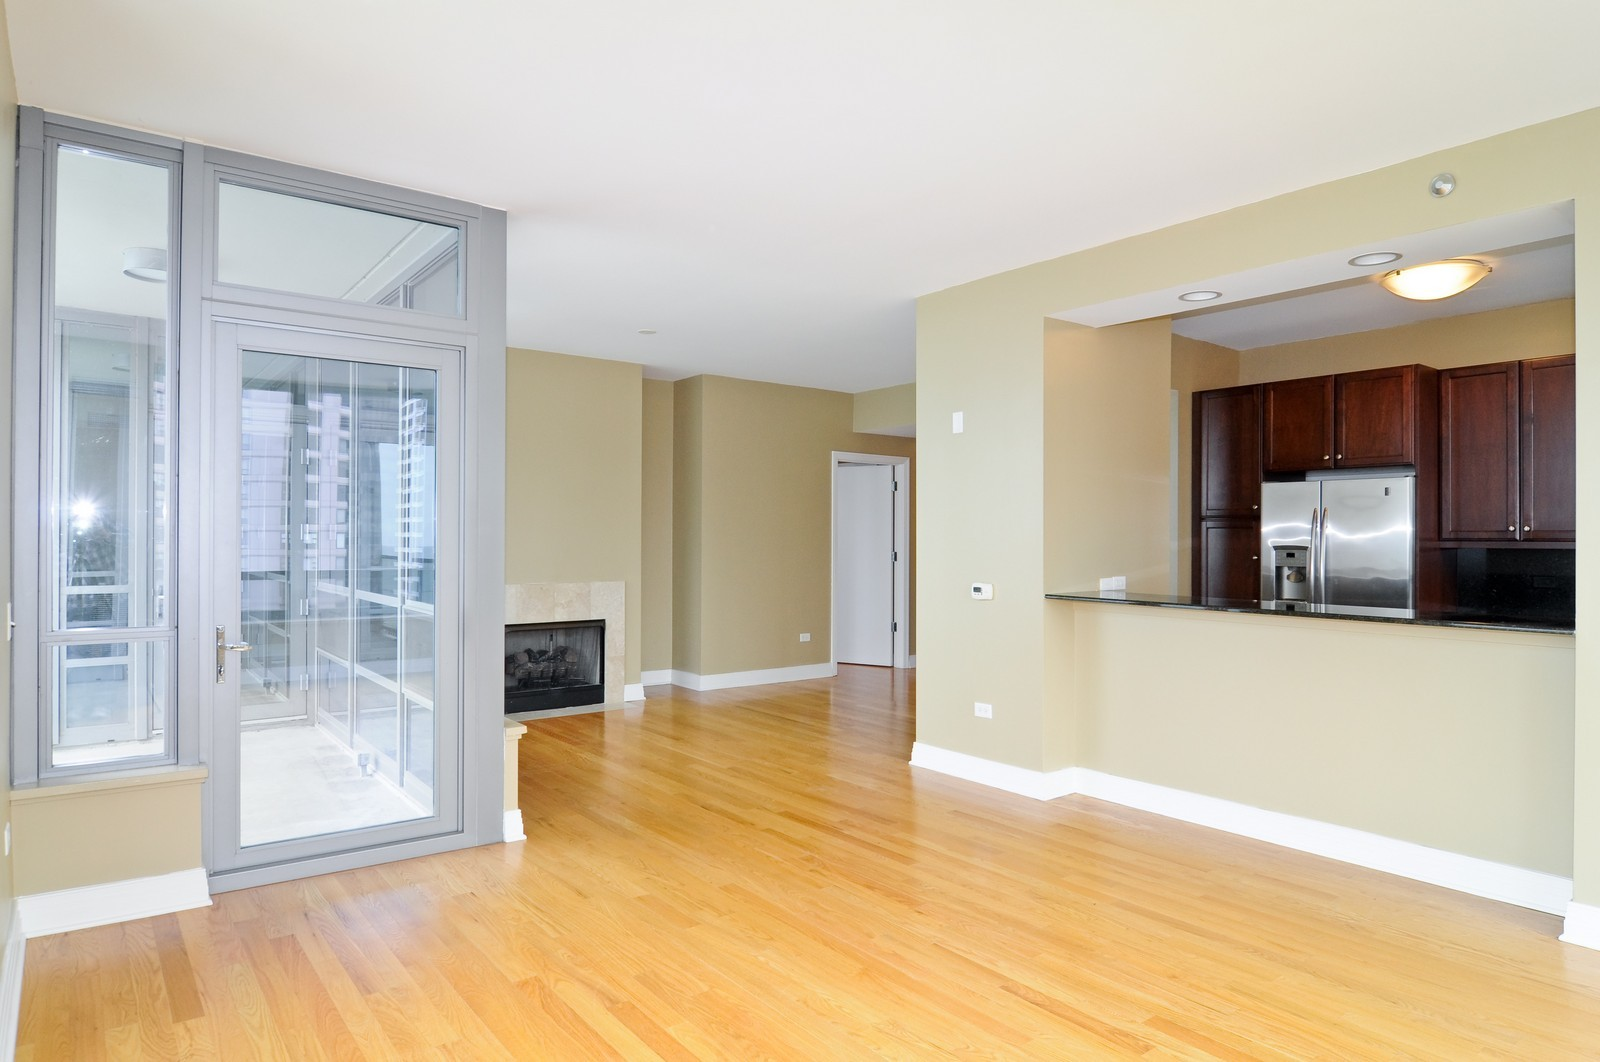 Real Estate Photography - 600 N Lake Shore Dr, Unit 2601, Chicago, IL, 60611 - Kitchen / Living Room